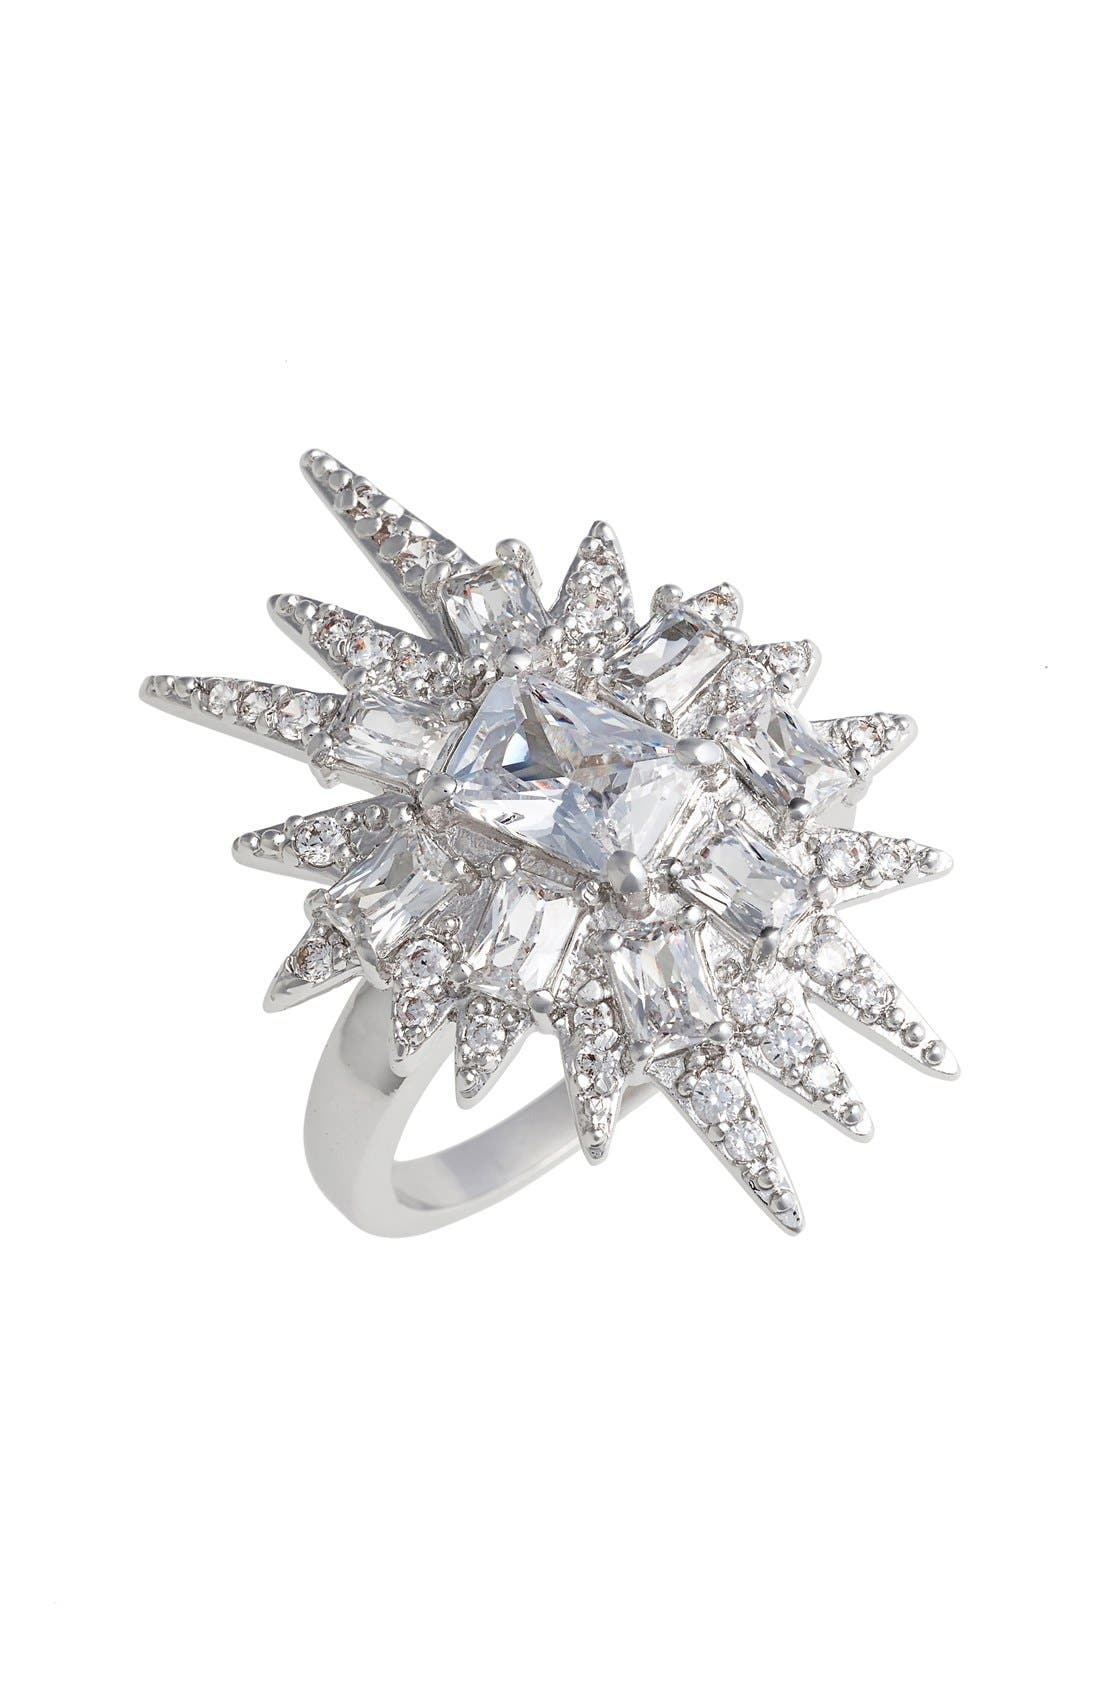 'Explosion' Cubic Zirconia Cocktail Ring,                             Main thumbnail 1, color,                             Silver